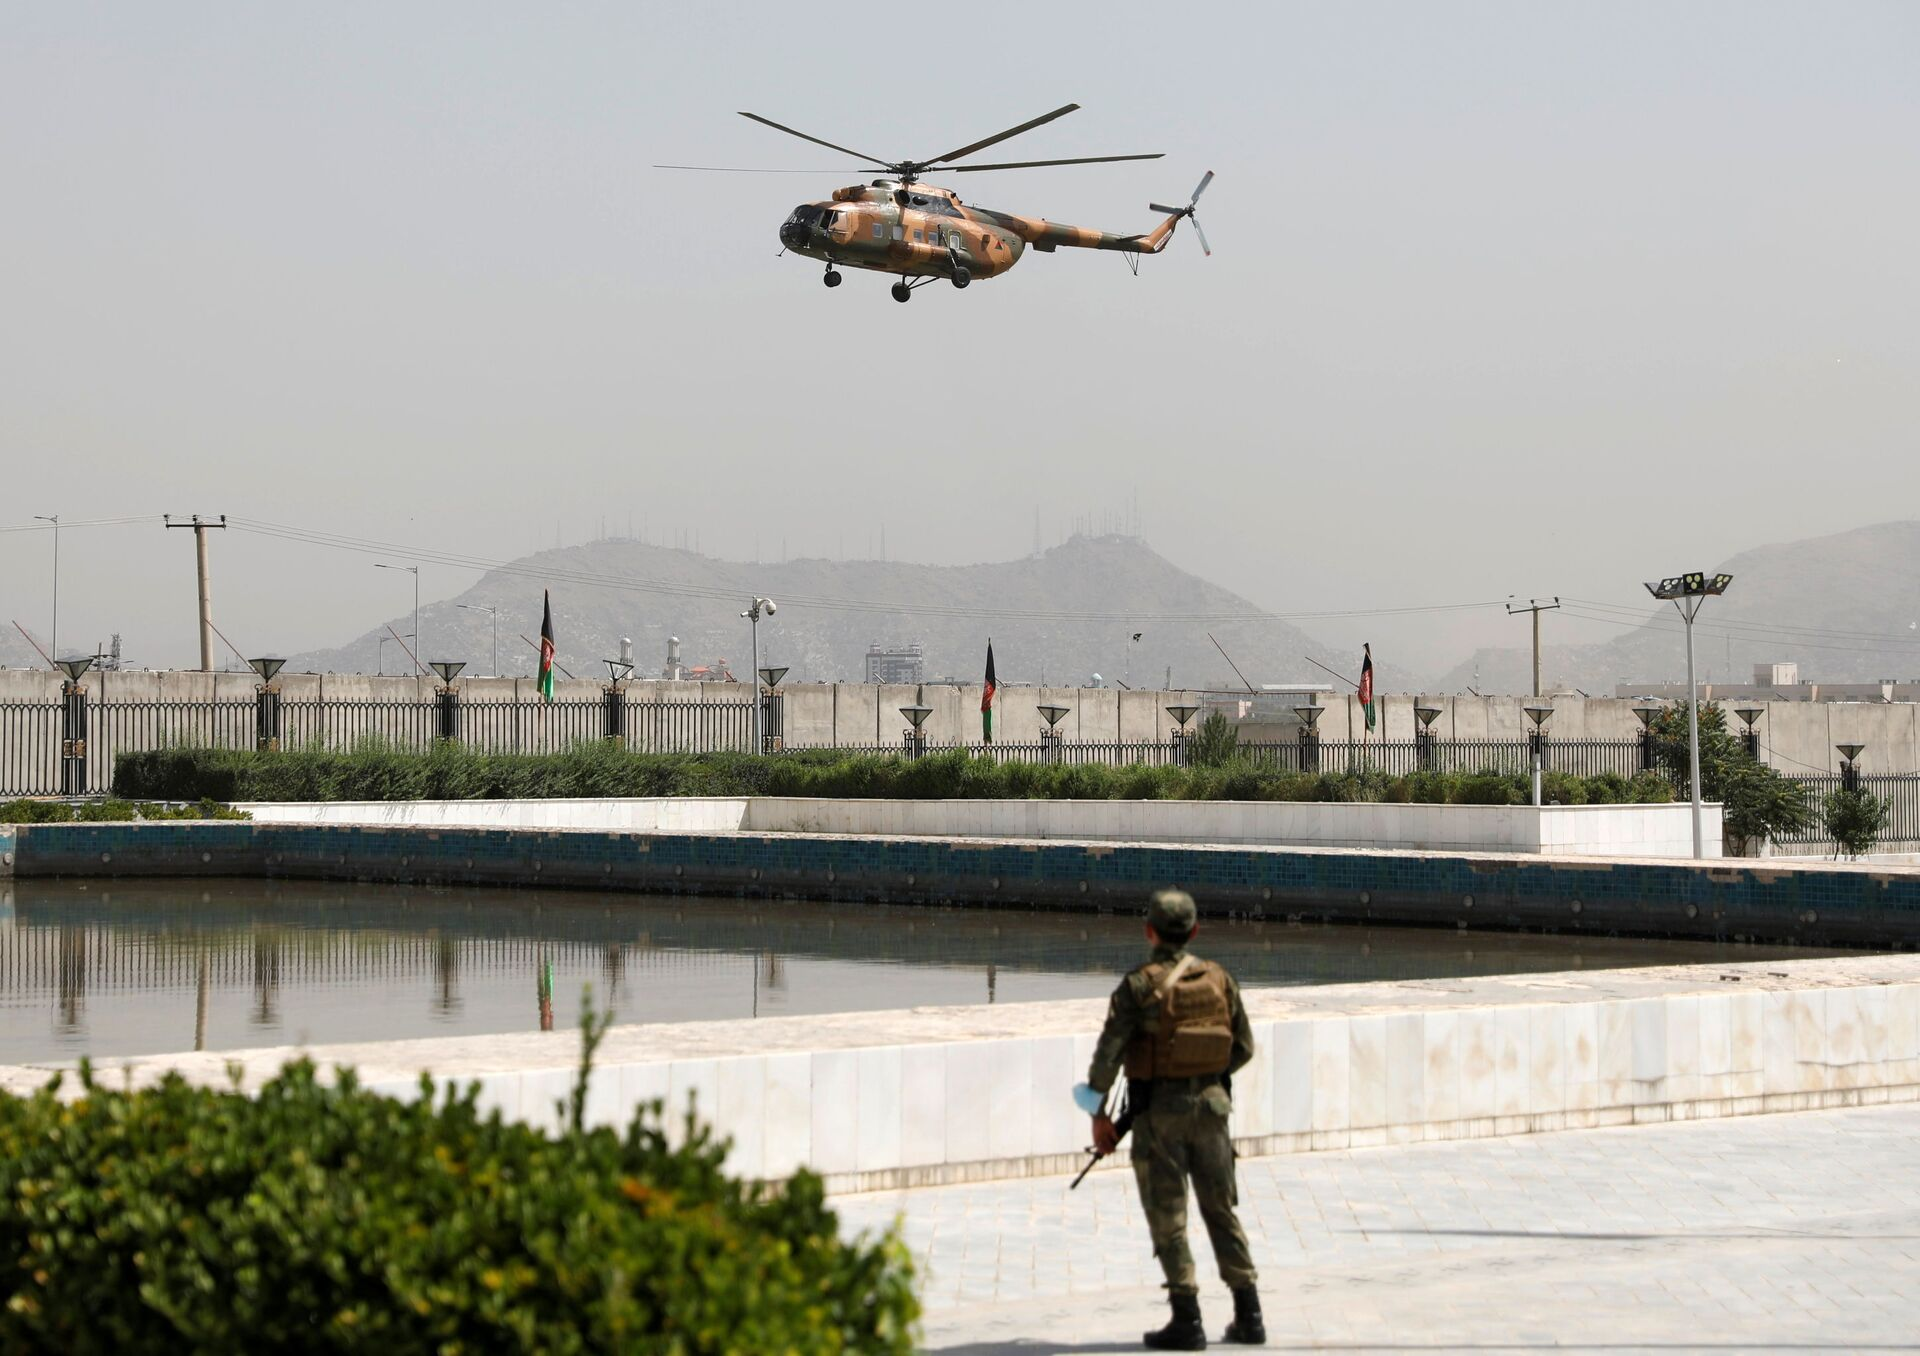 A military helicopter carrying Afghan President Ashraf Ghani prepares to land near the parliament in Kabul, Afghanistan August 2, 2021 - Sputnik International, 1920, 07.09.2021